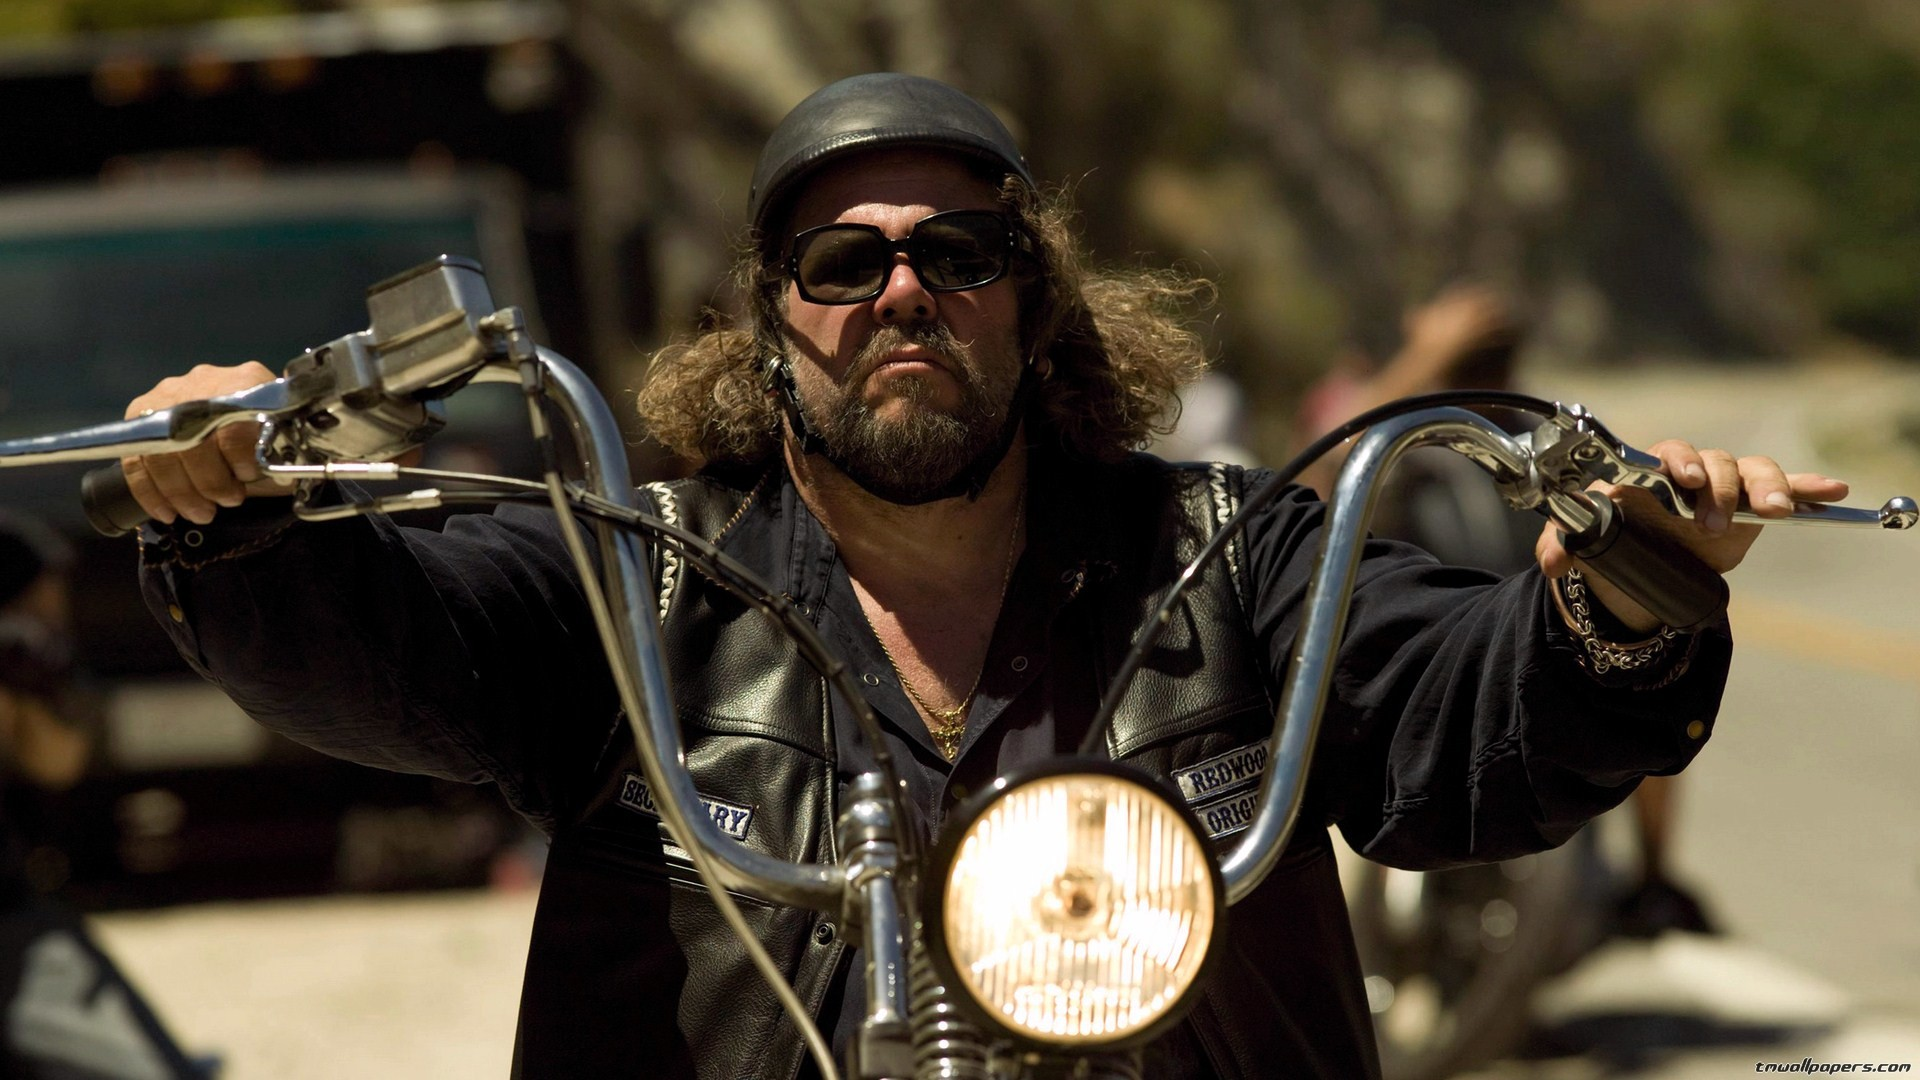 Wallpapers Serie Tv – Sons of Anarchy wallpapers – 2